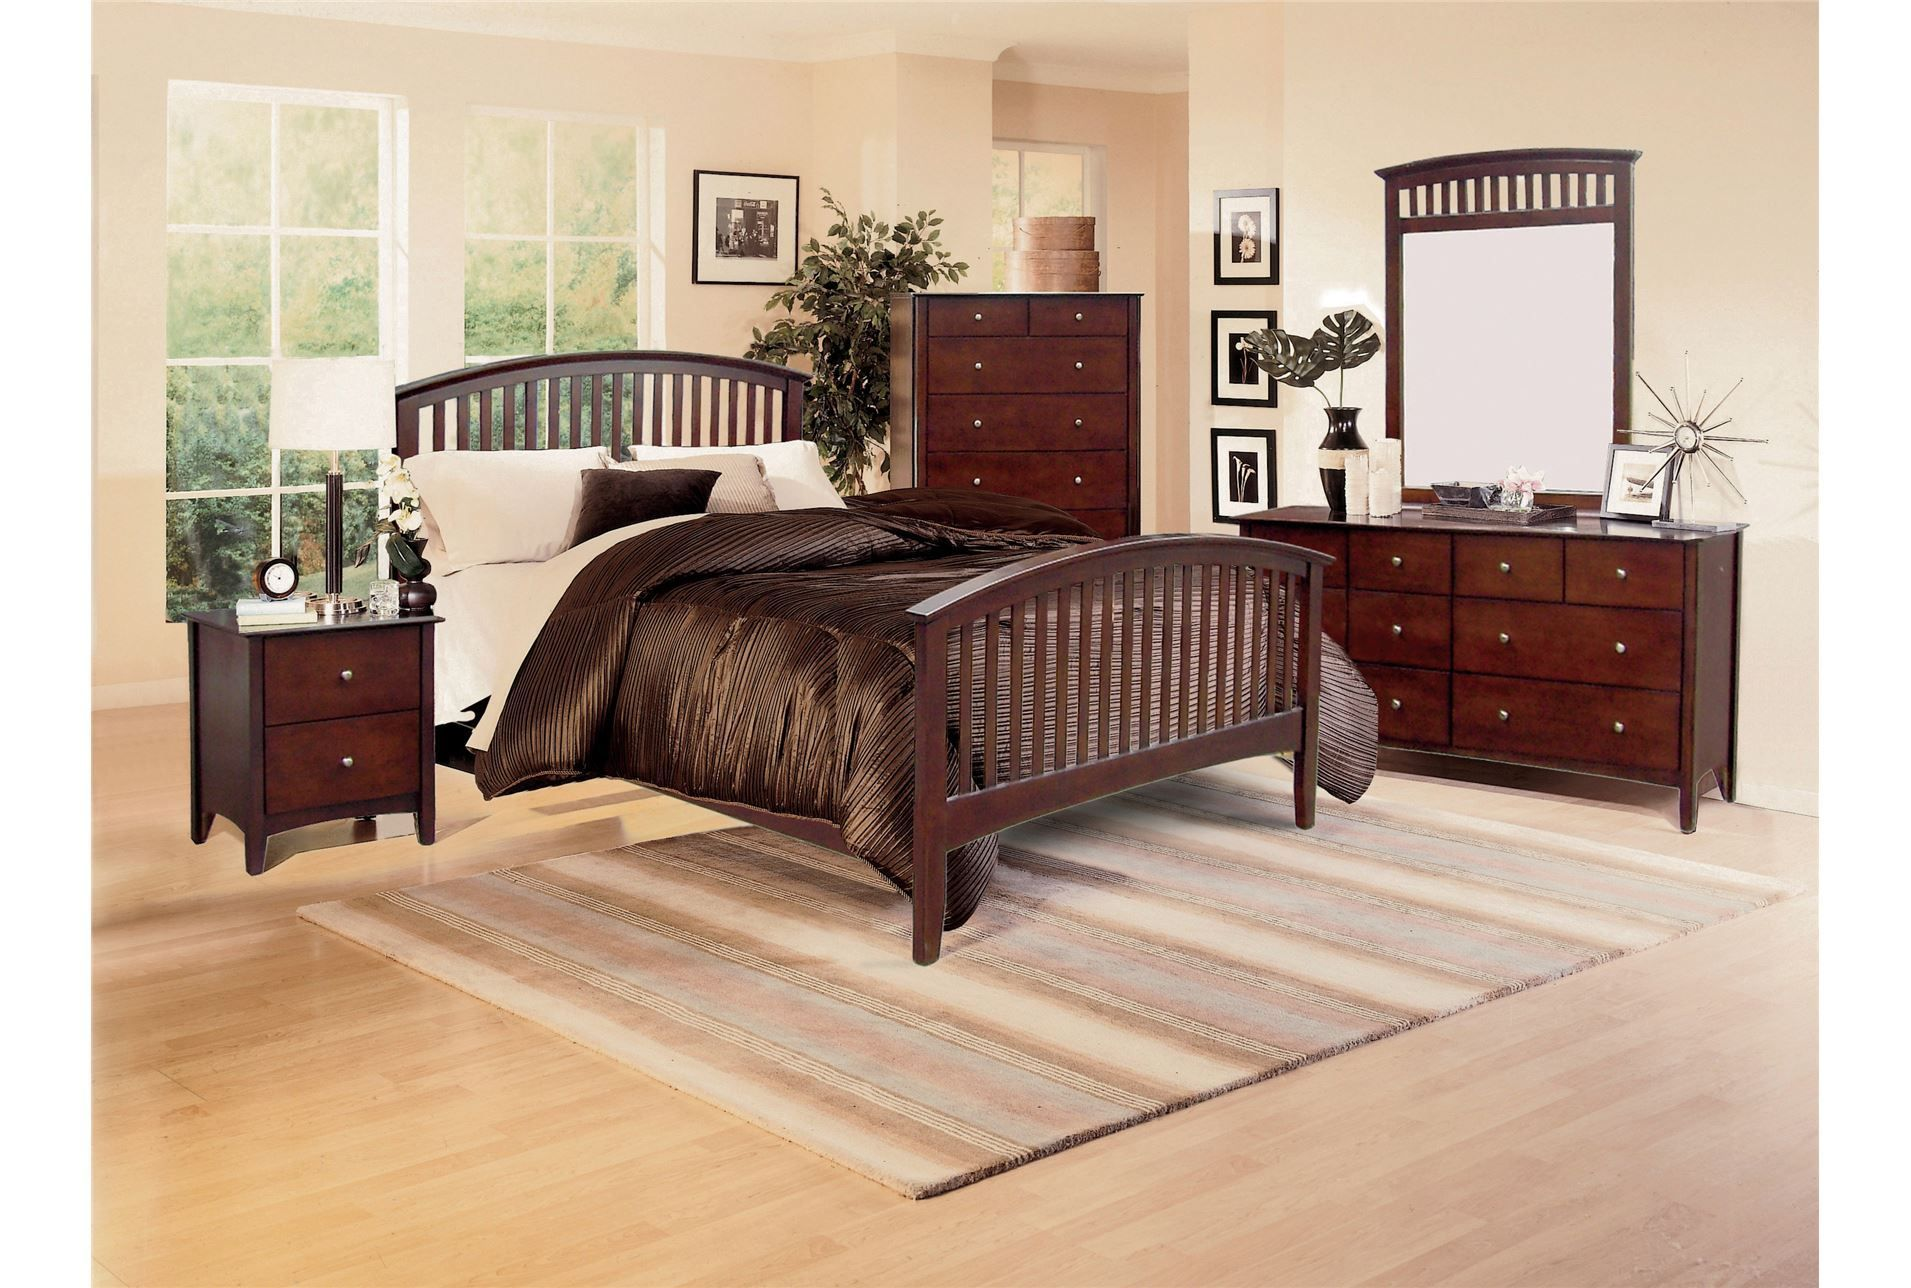 Lawson Queen Panel Bed King size bedroom sets, Discount